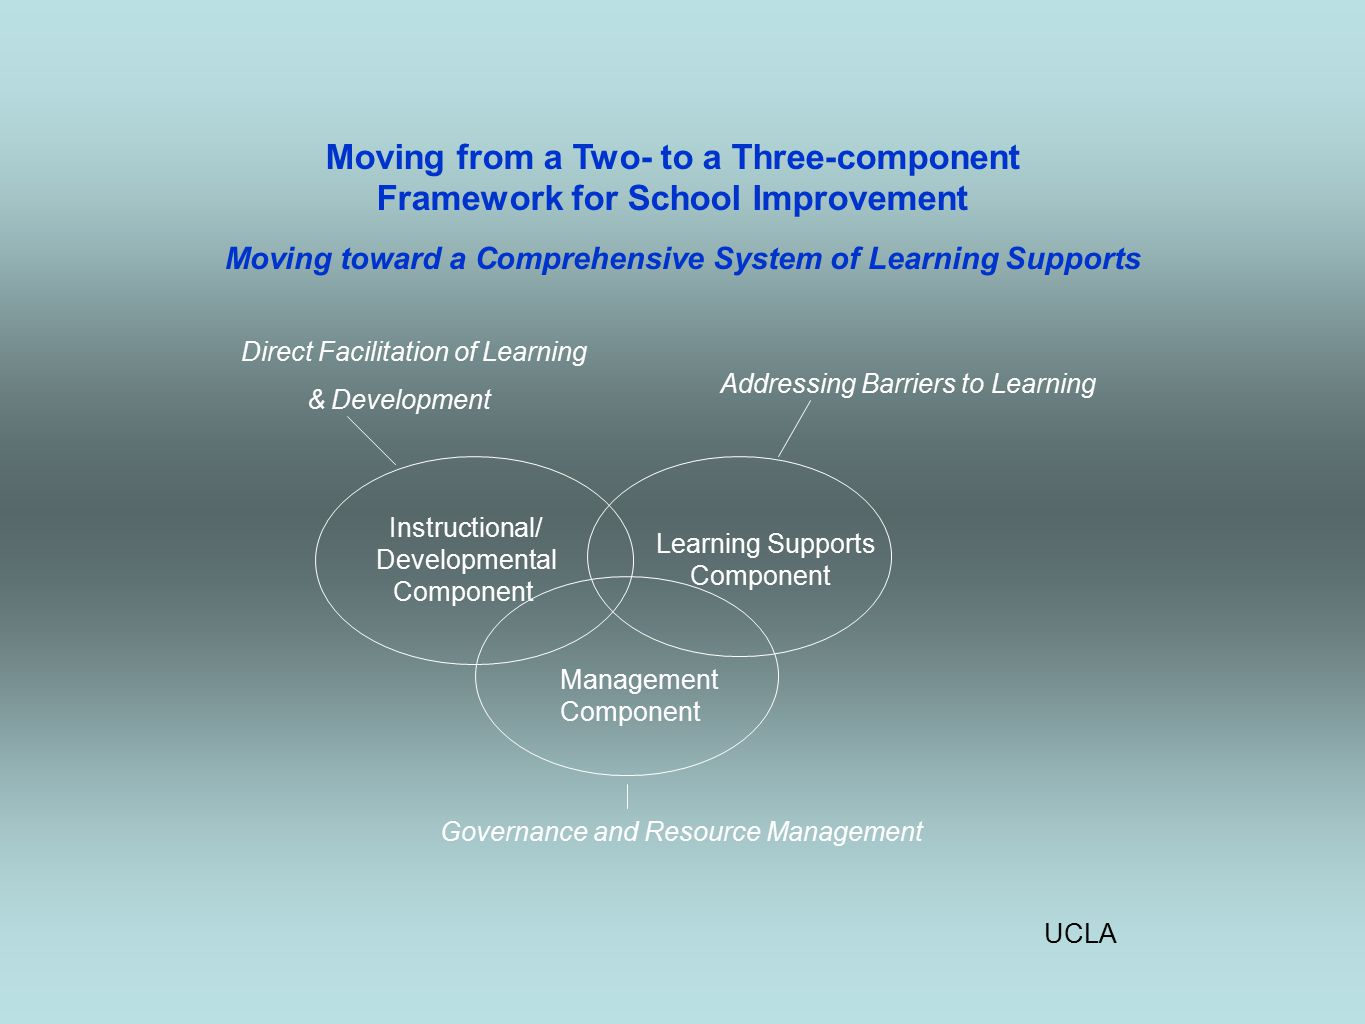 UCLA Moving from a Two- to a Three-component Framework for School Improvement Moving toward a Comprehensive System of Learning Supports Direct Facilitation of Learning & Development Addressing Barriers to Learning Instructional/ Developmental Component Learning Supports Component Management Component Governance and Resource Management